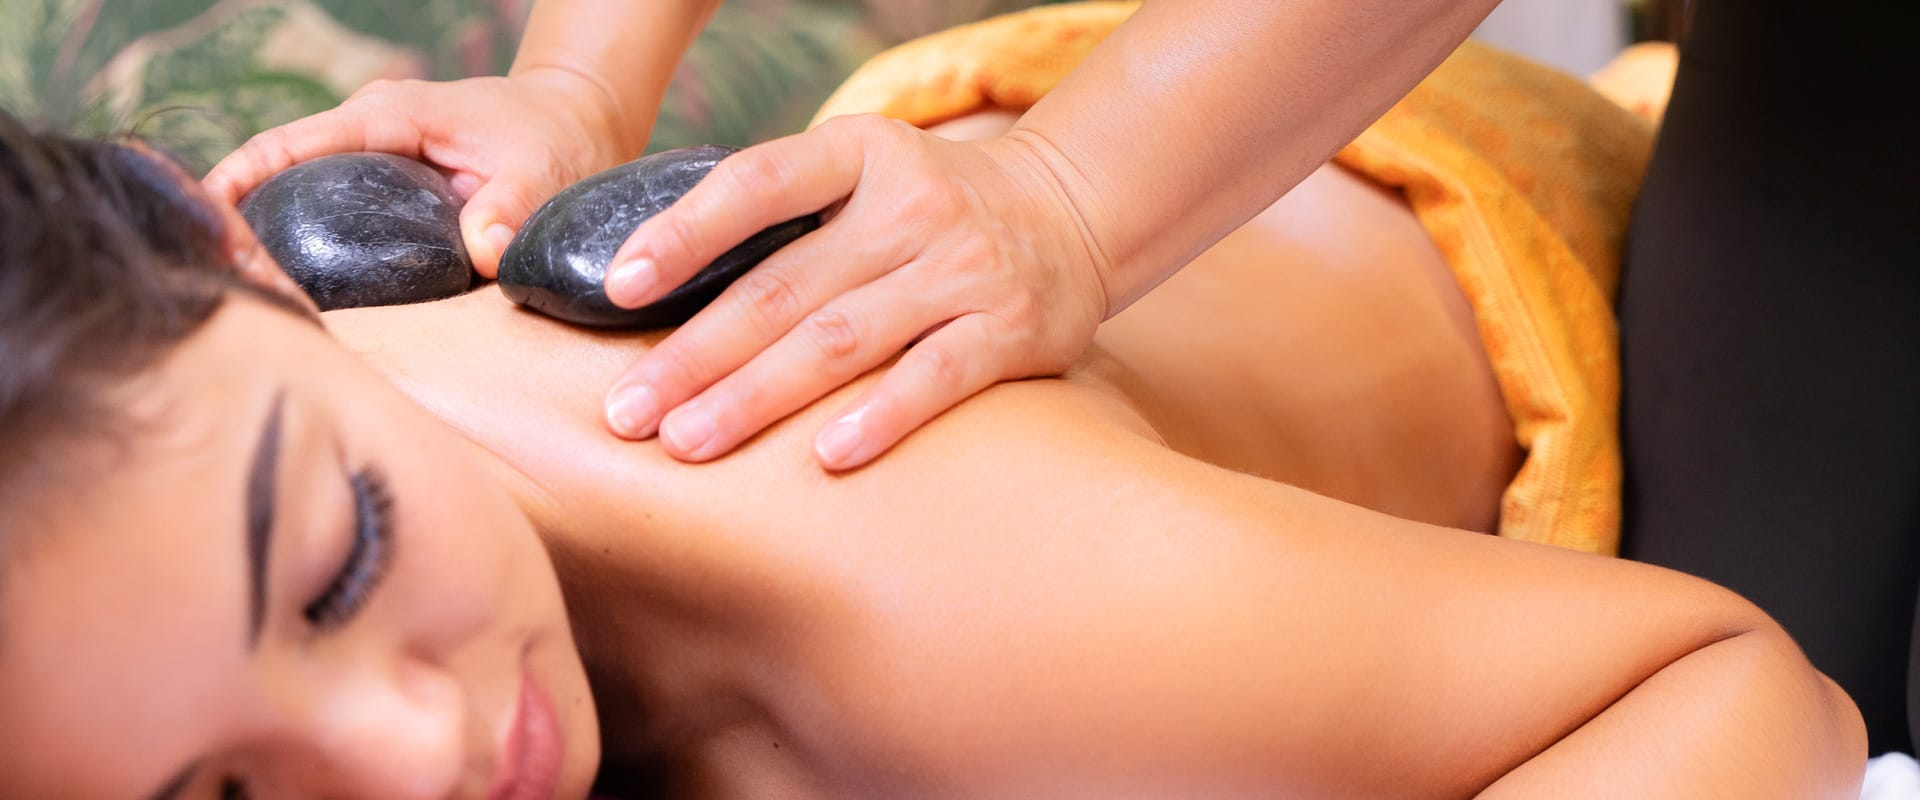 Offering a Variety of Massages, Body Treatments Complemented by Local Indigenous Practices